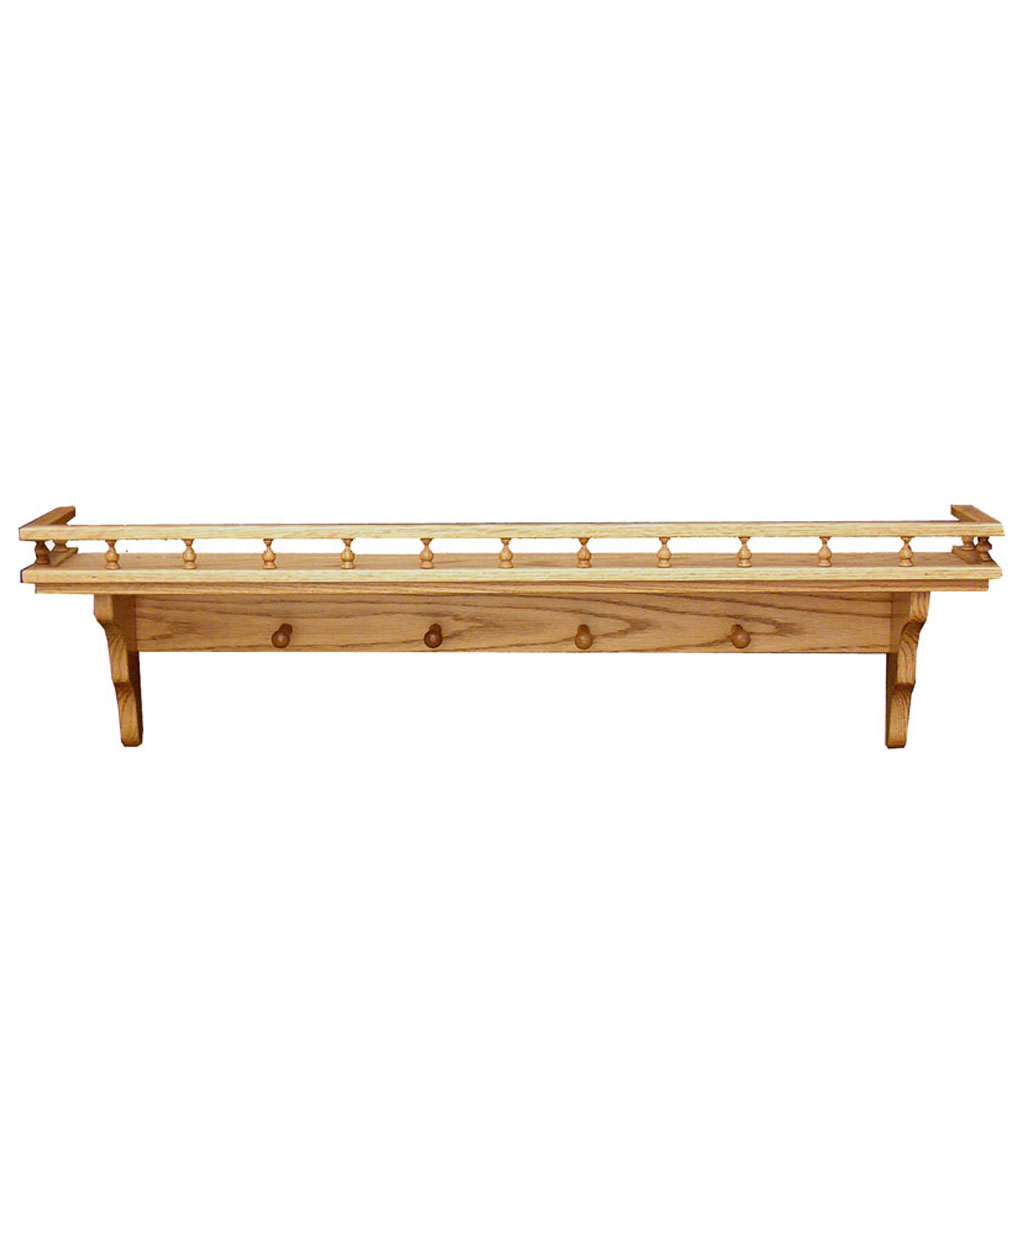 Wall Shelf With Pegs And Railing Amish Direct Furniture